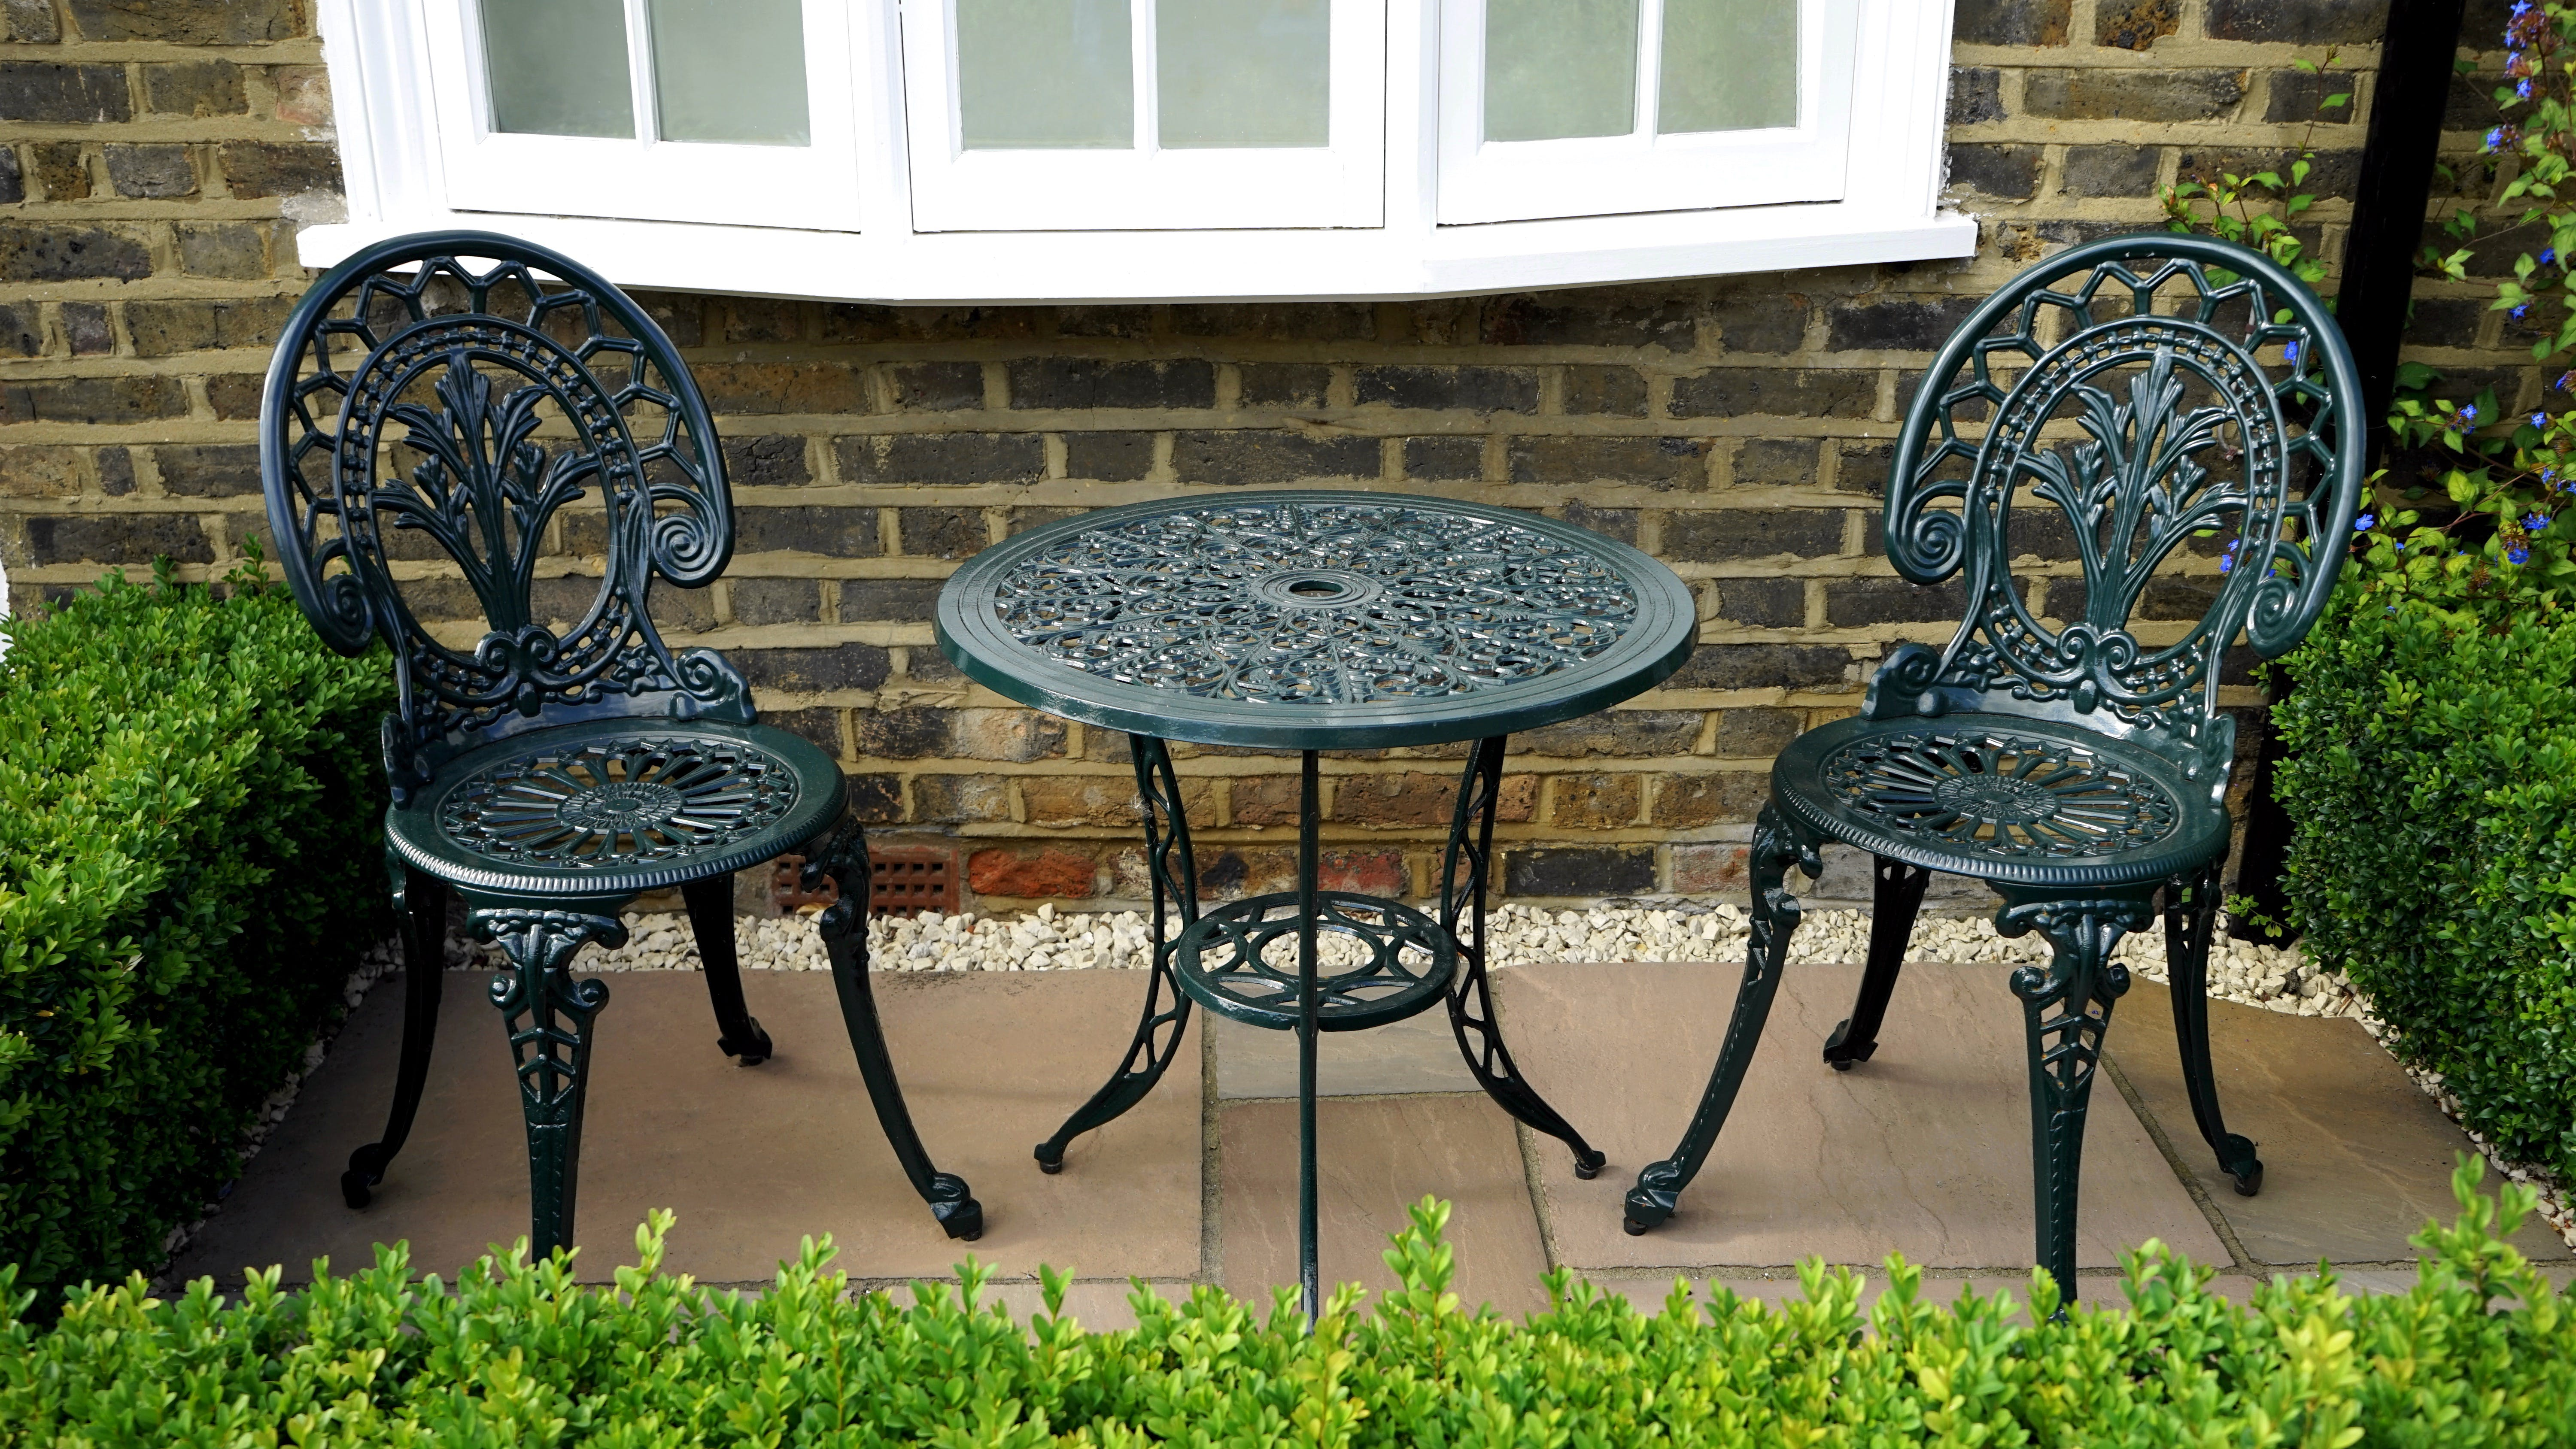 Black Steel Table With Chairs